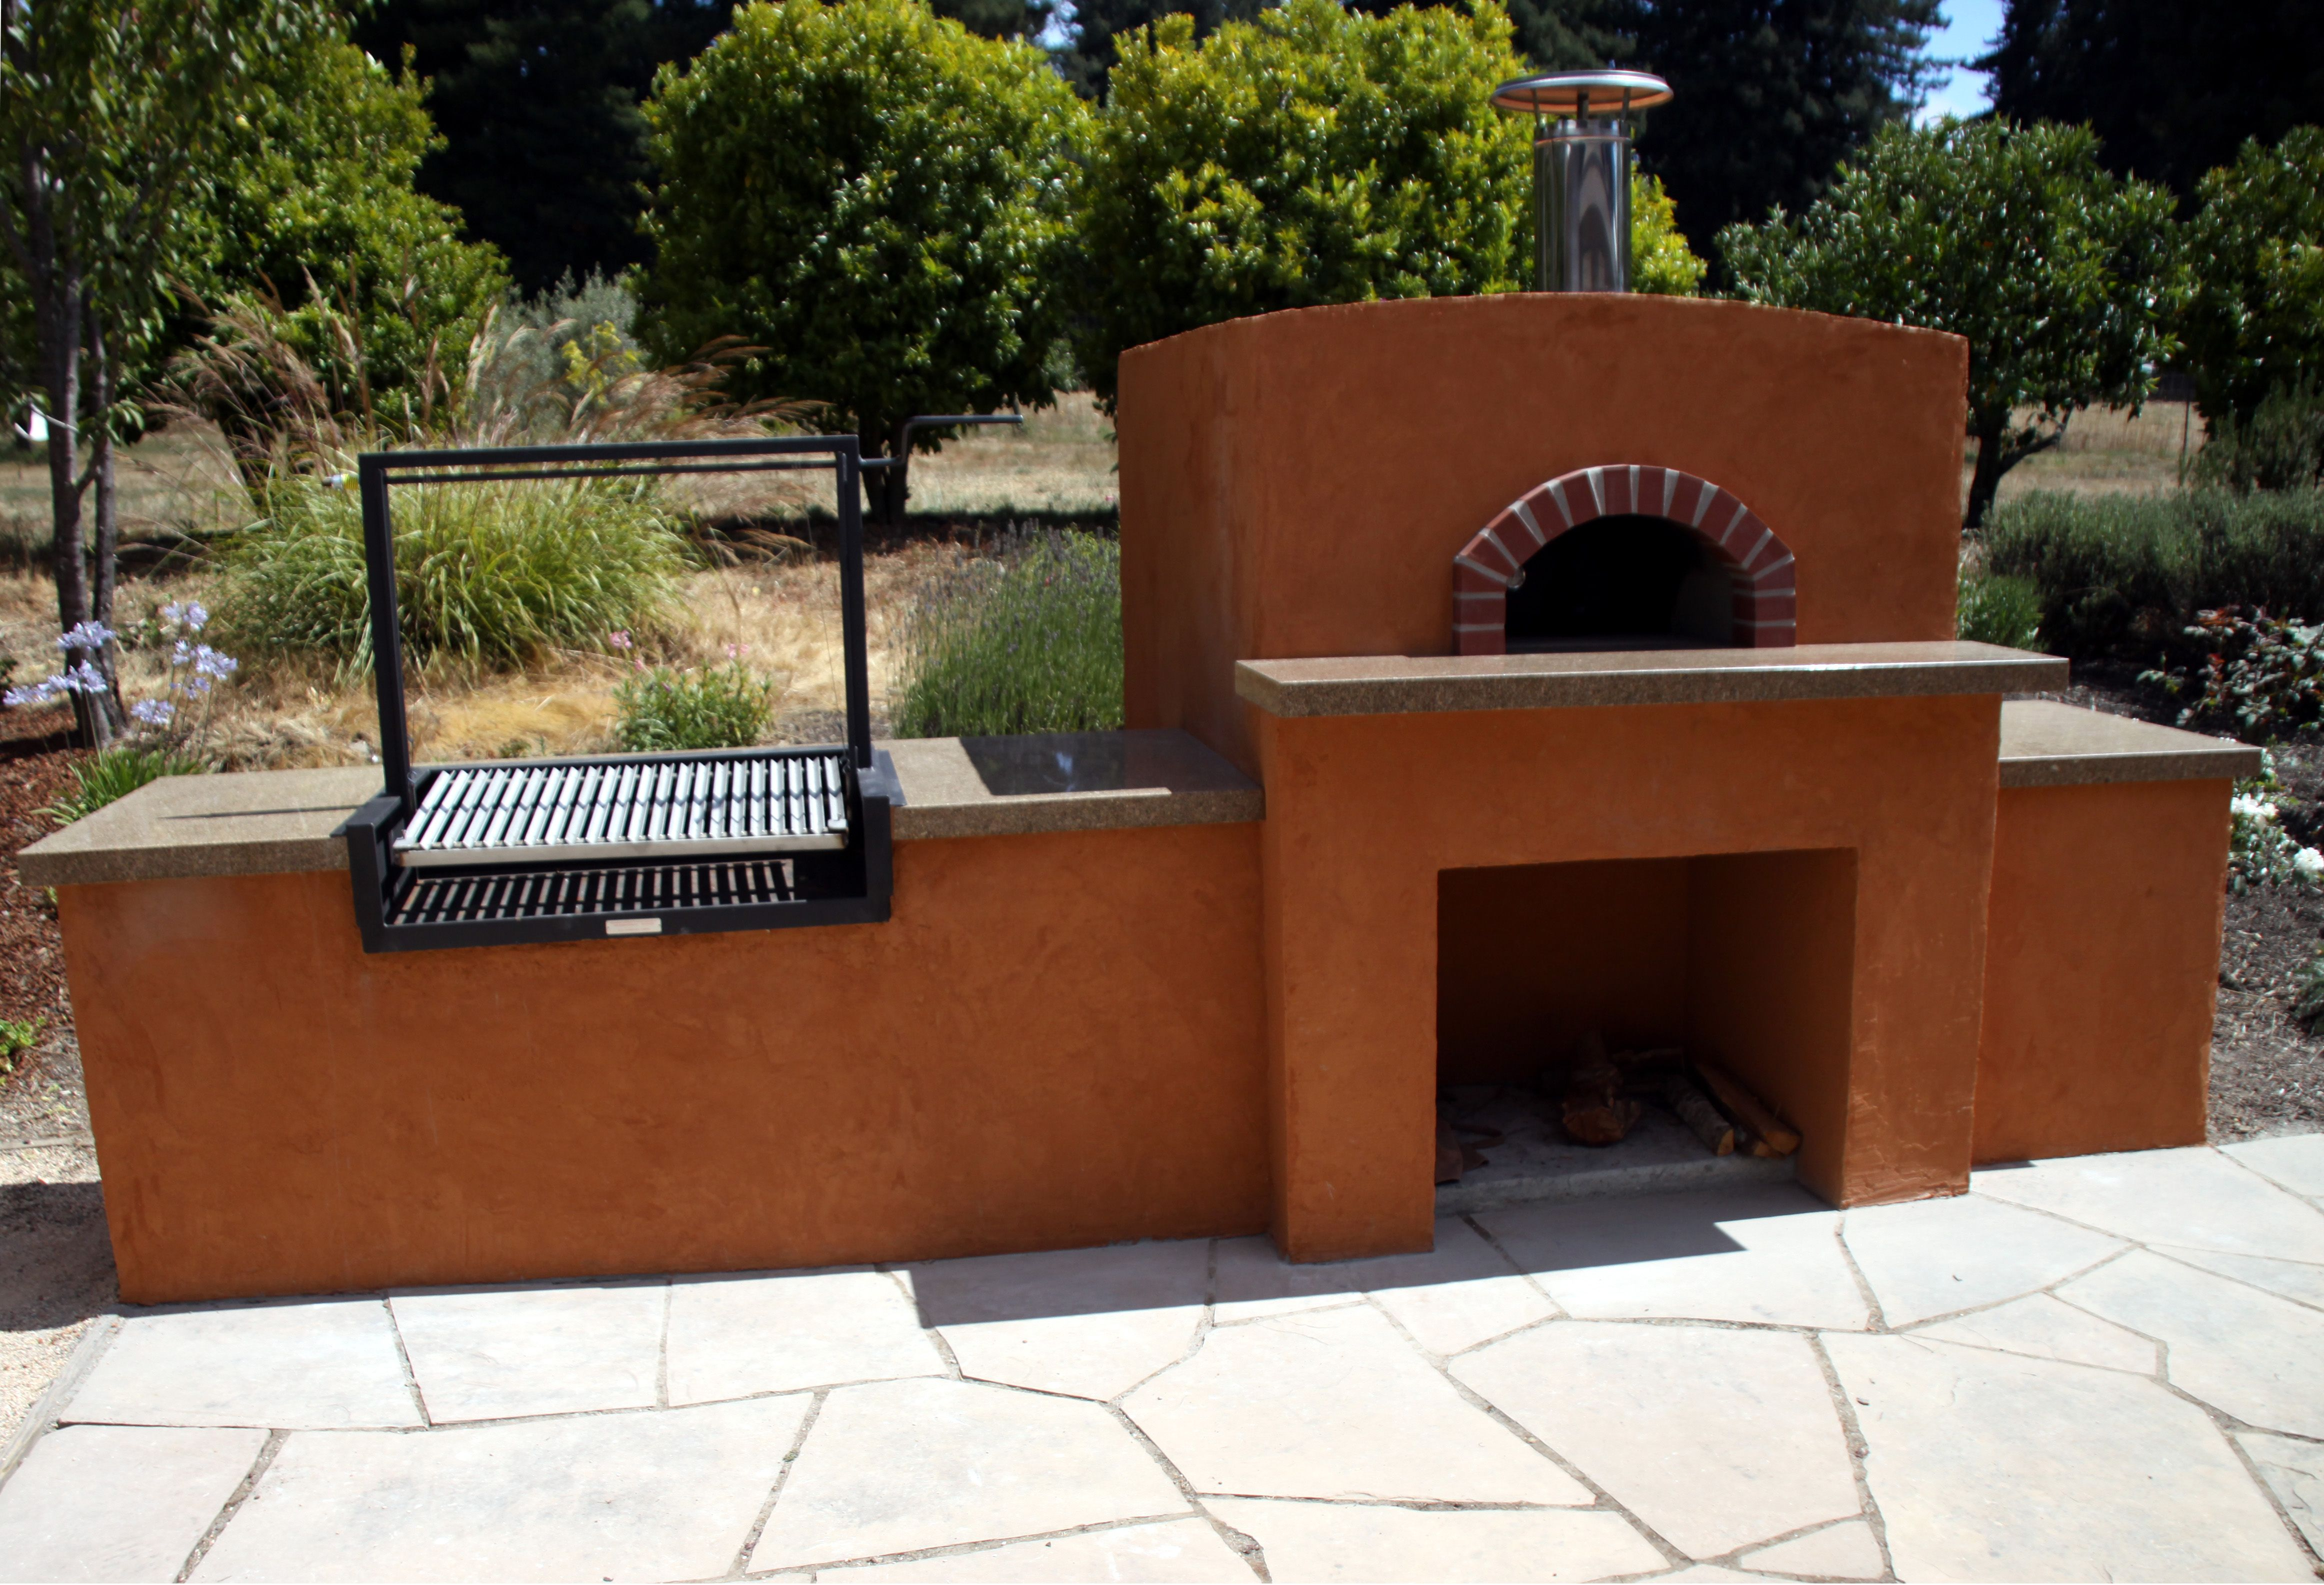 Pin By Marcus Duarte On Outdoor Kitchens Charcoal Bbq Pizza Oven Wood Fired Pizza Oven